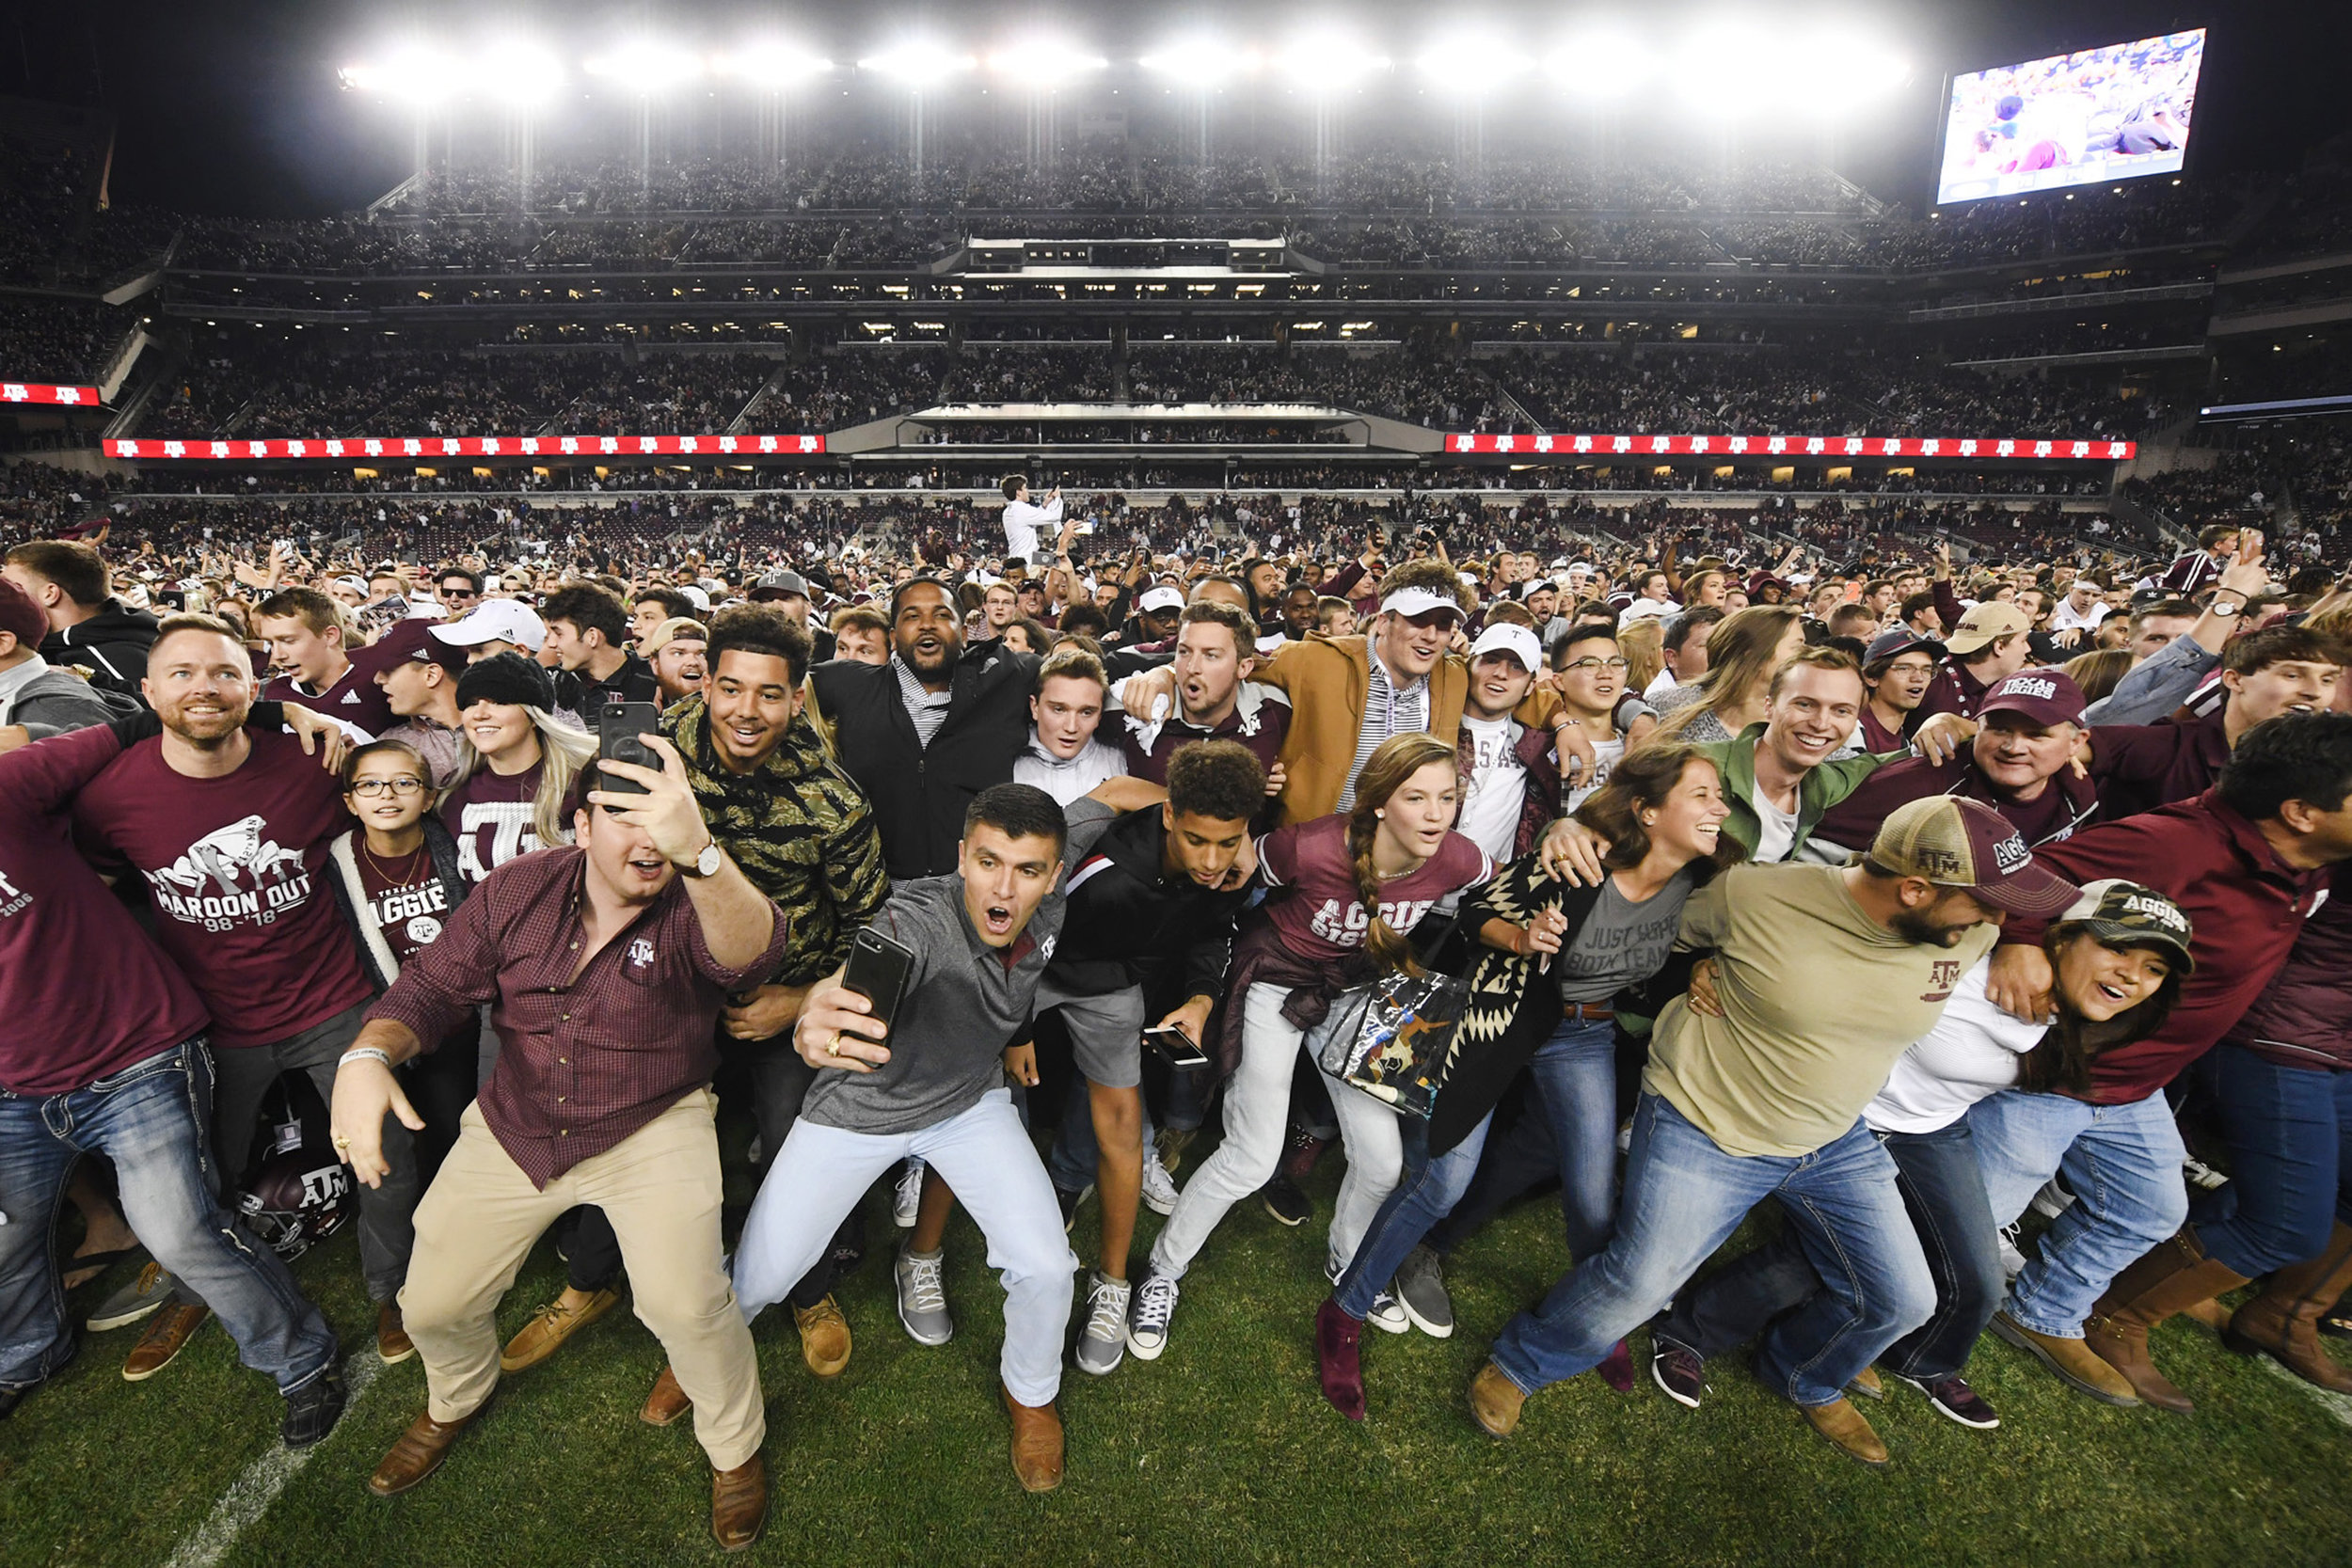 Fans storm the field as the Aggies celebrate their win in the seventh overtime against LSU at Kyle Field on Saturday, Nov. 24, 2018, in College Station, Texas. (Laura McKenzie/The Eagle)